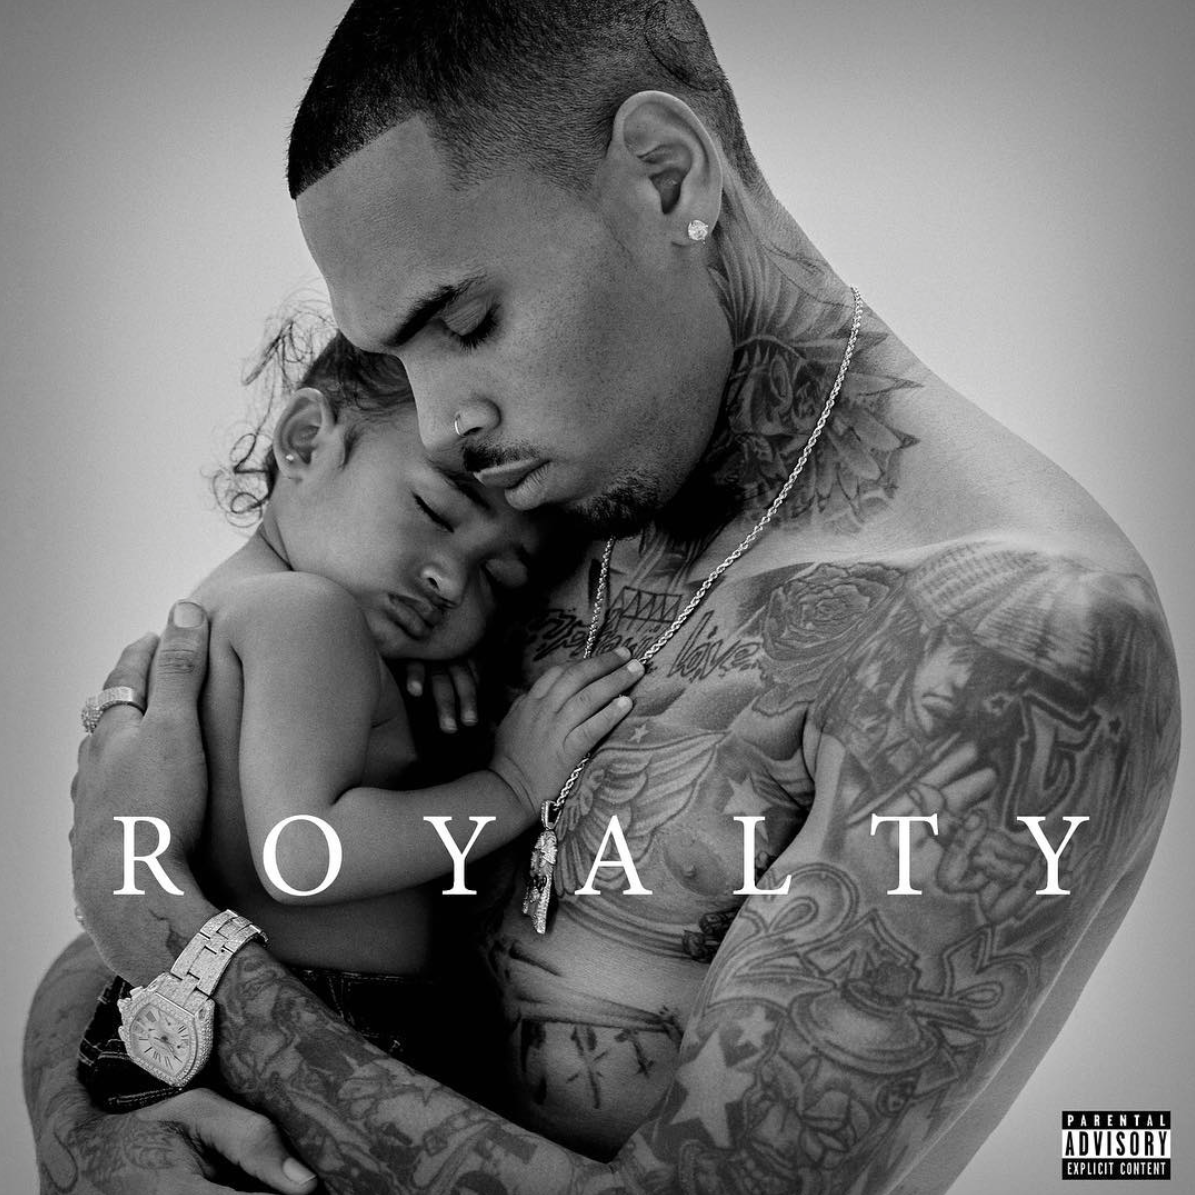 chris-brown-royalty-album-cover-e1445027732379.png